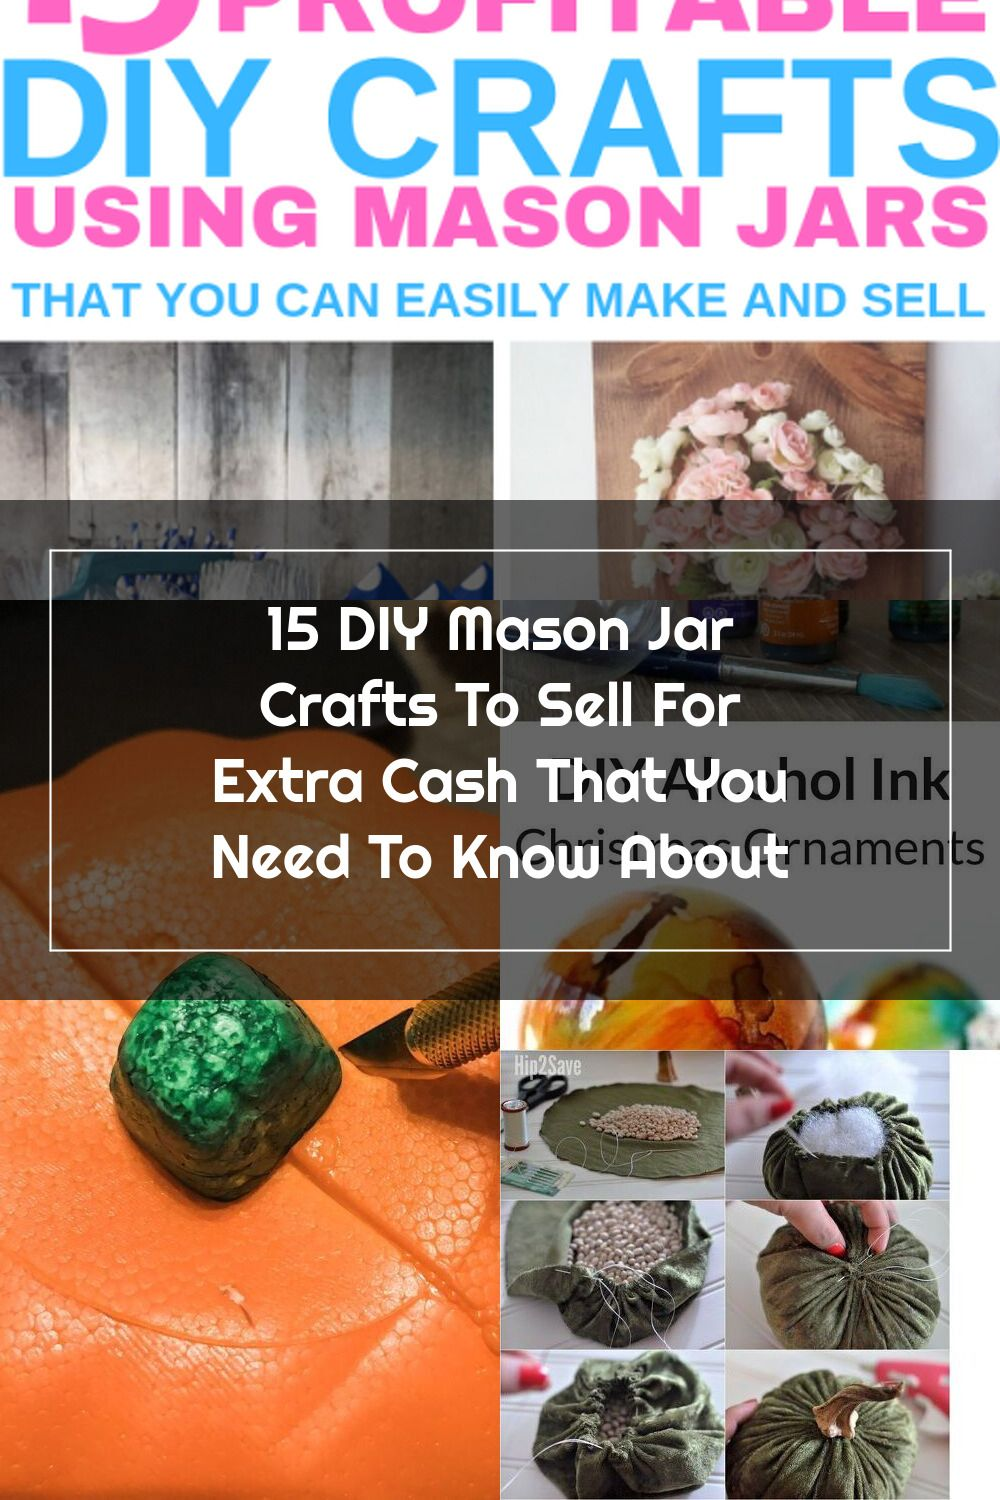 15 Diy Mason Jar Crafts To Sell For Extra Money Creative And Unique Easy Diy Crafts You Can Make Using Dollar